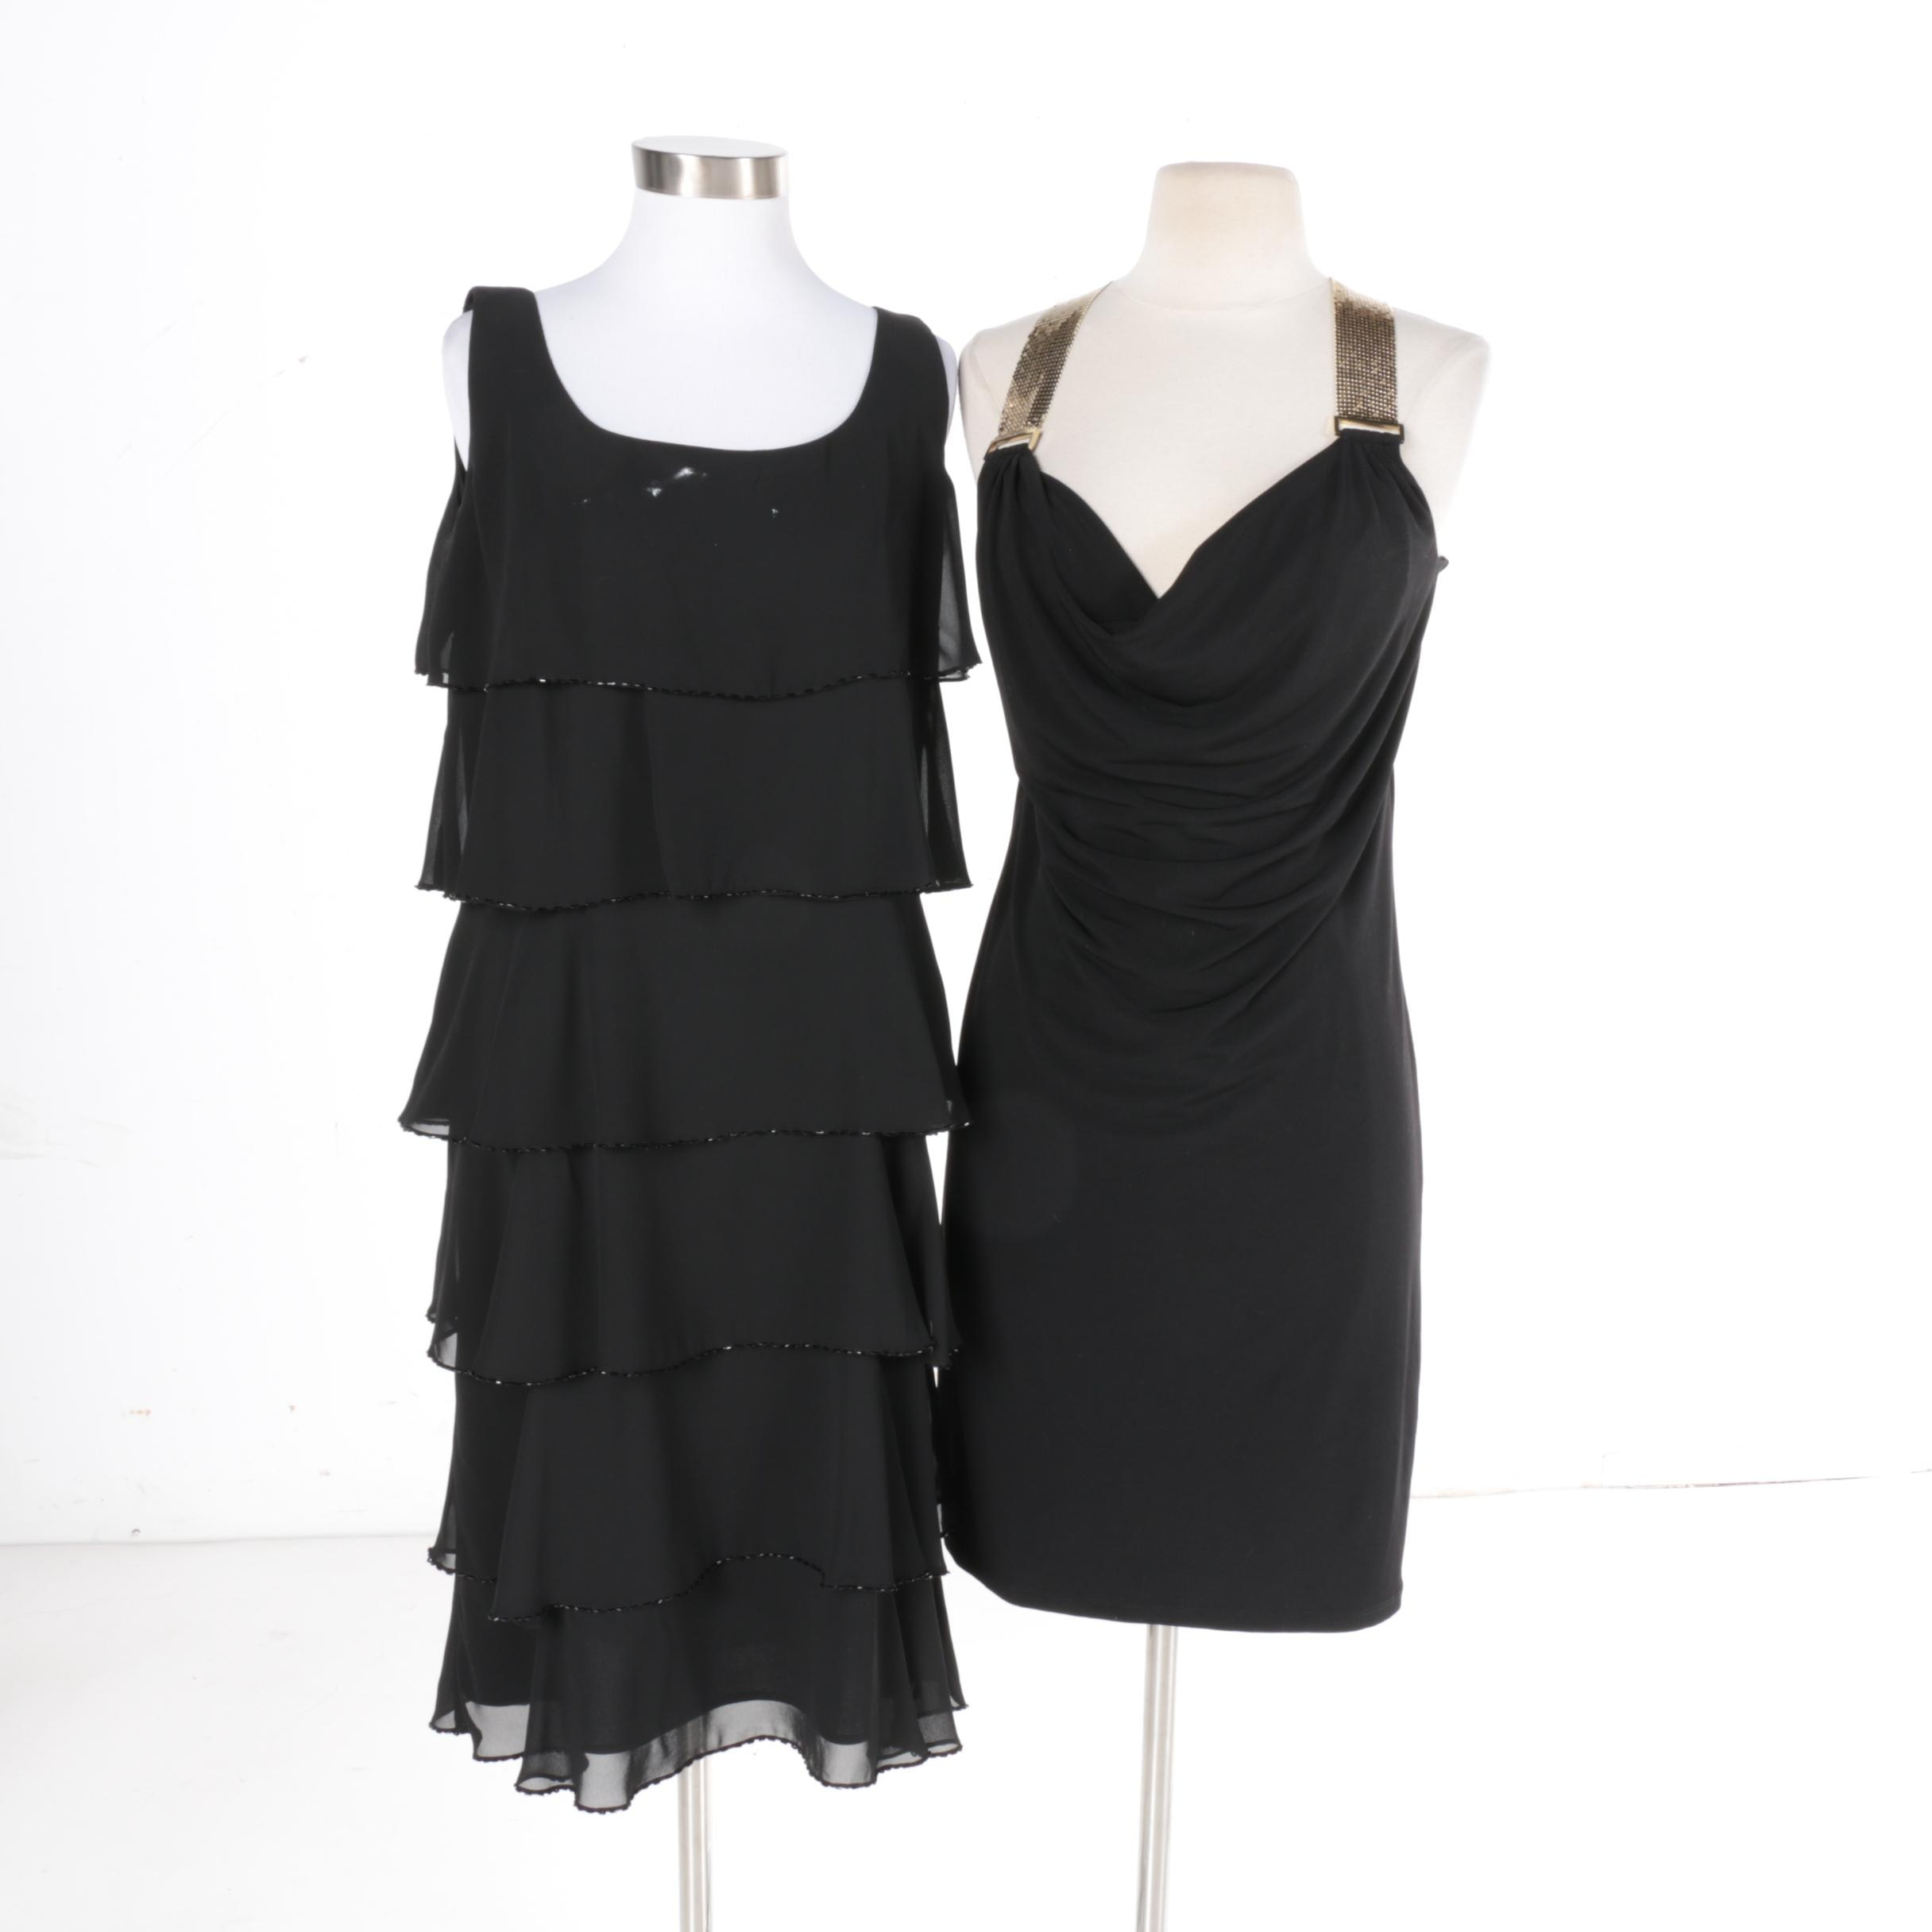 Michael by Michael Kors and Patra Black Dresses